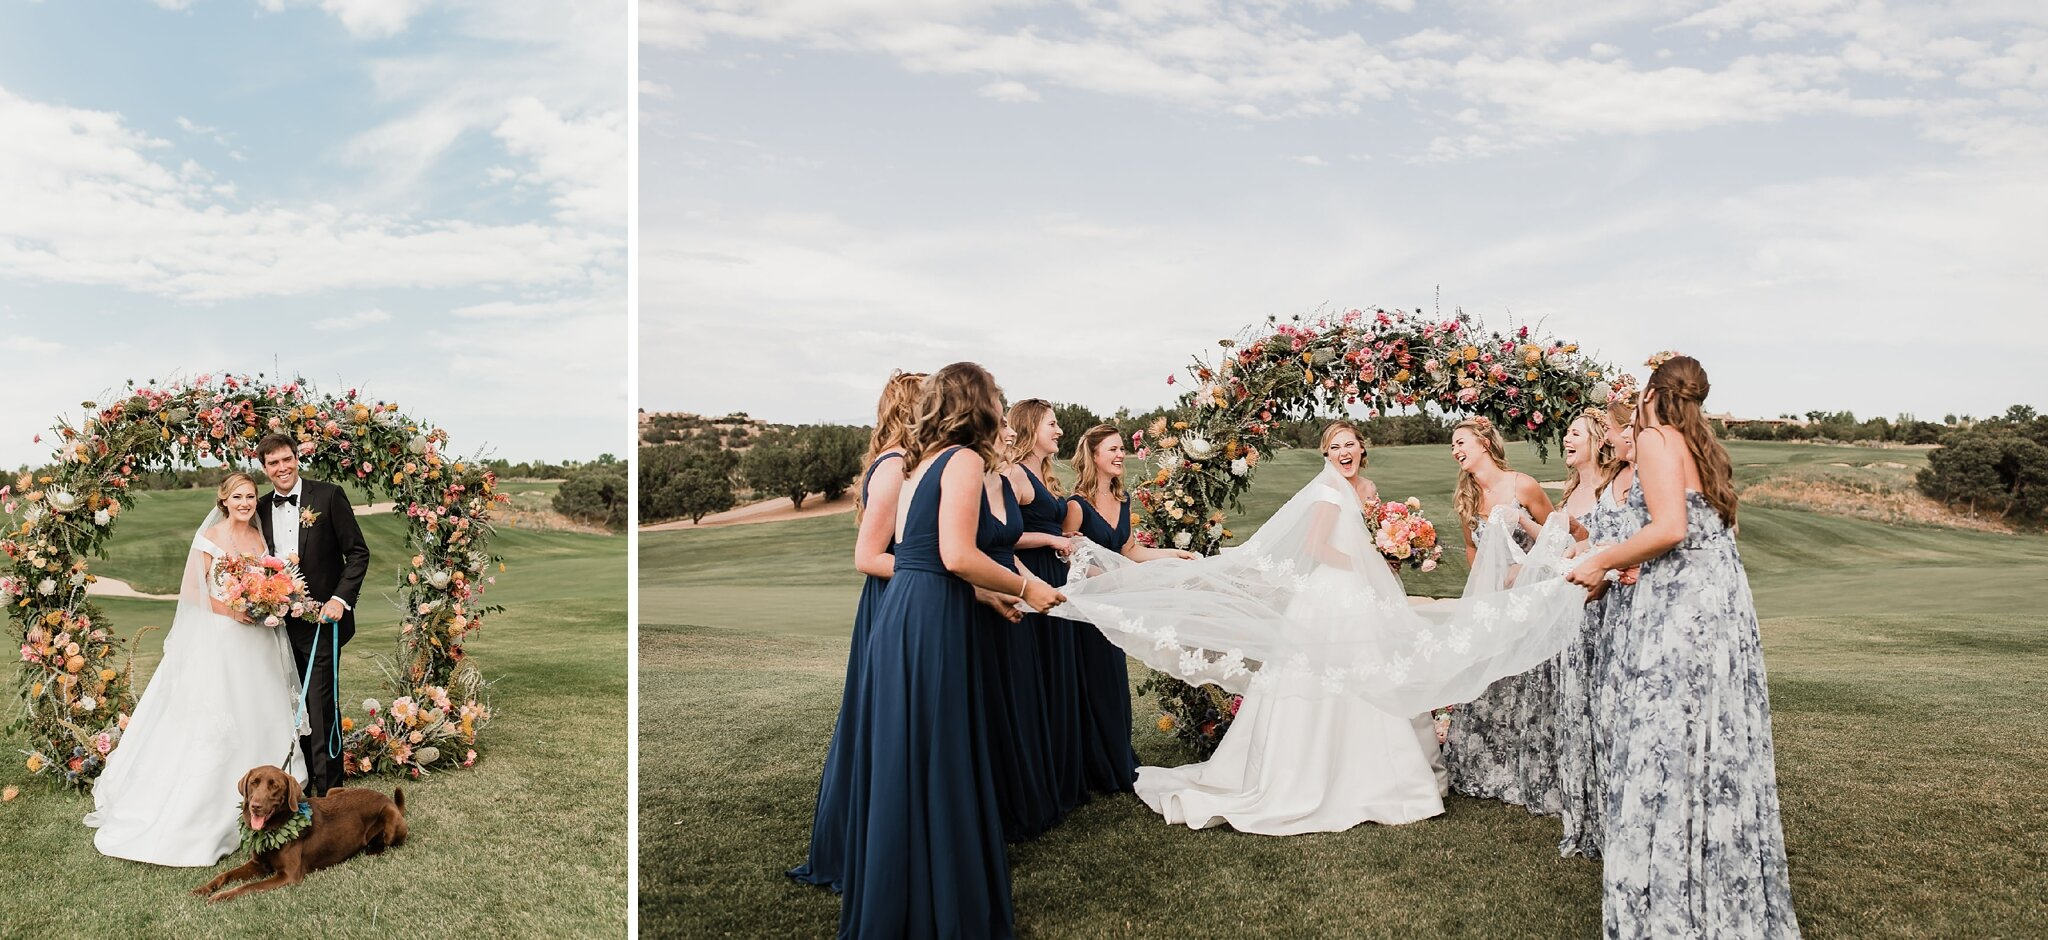 Alicia+lucia+photography+-+albuquerque+wedding+photographer+-+santa+fe+wedding+photography+-+new+mexico+wedding+photographer+-+new+mexico+wedding+-+wedding+-+bridal+gown+-+wedding+gown+-+ballgown+wedding+gown+-+ballgown+bridal+gown_0017.jpg